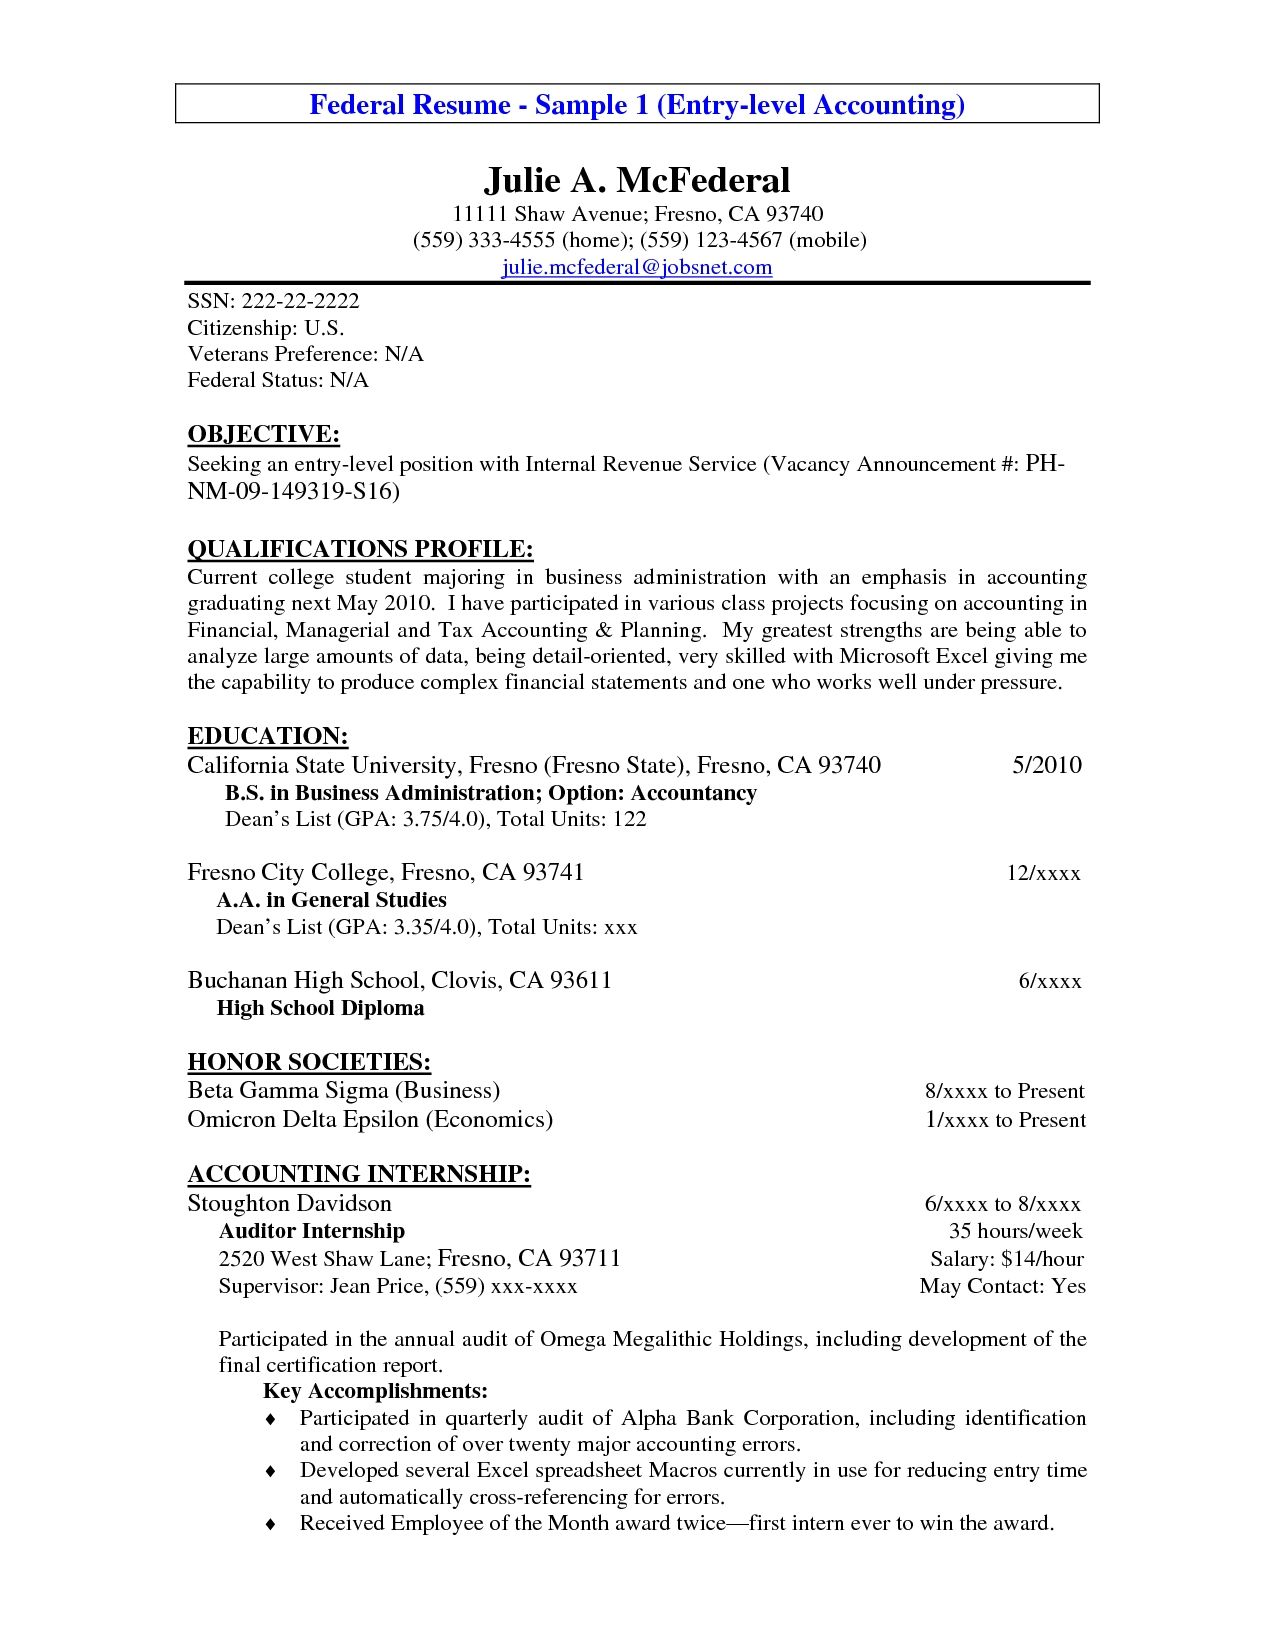 entry level resume example entry level accounting resume sample entry level resume example entry level accounting resume sample gallery photos